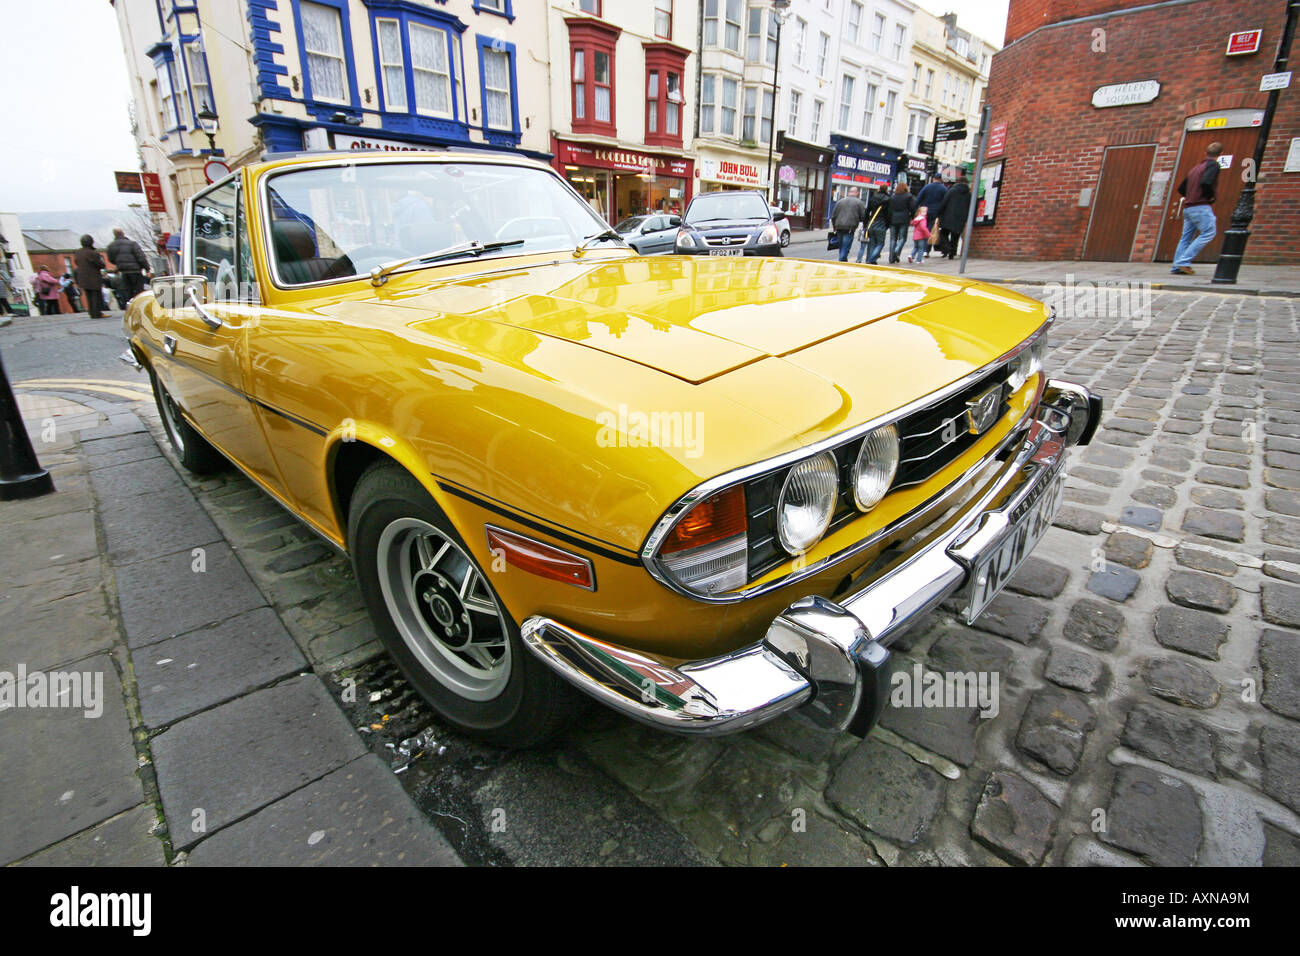 Restored Triumph Stag Sports Car In Scarborough With Wide Angle Lens Stock Photo Alamy